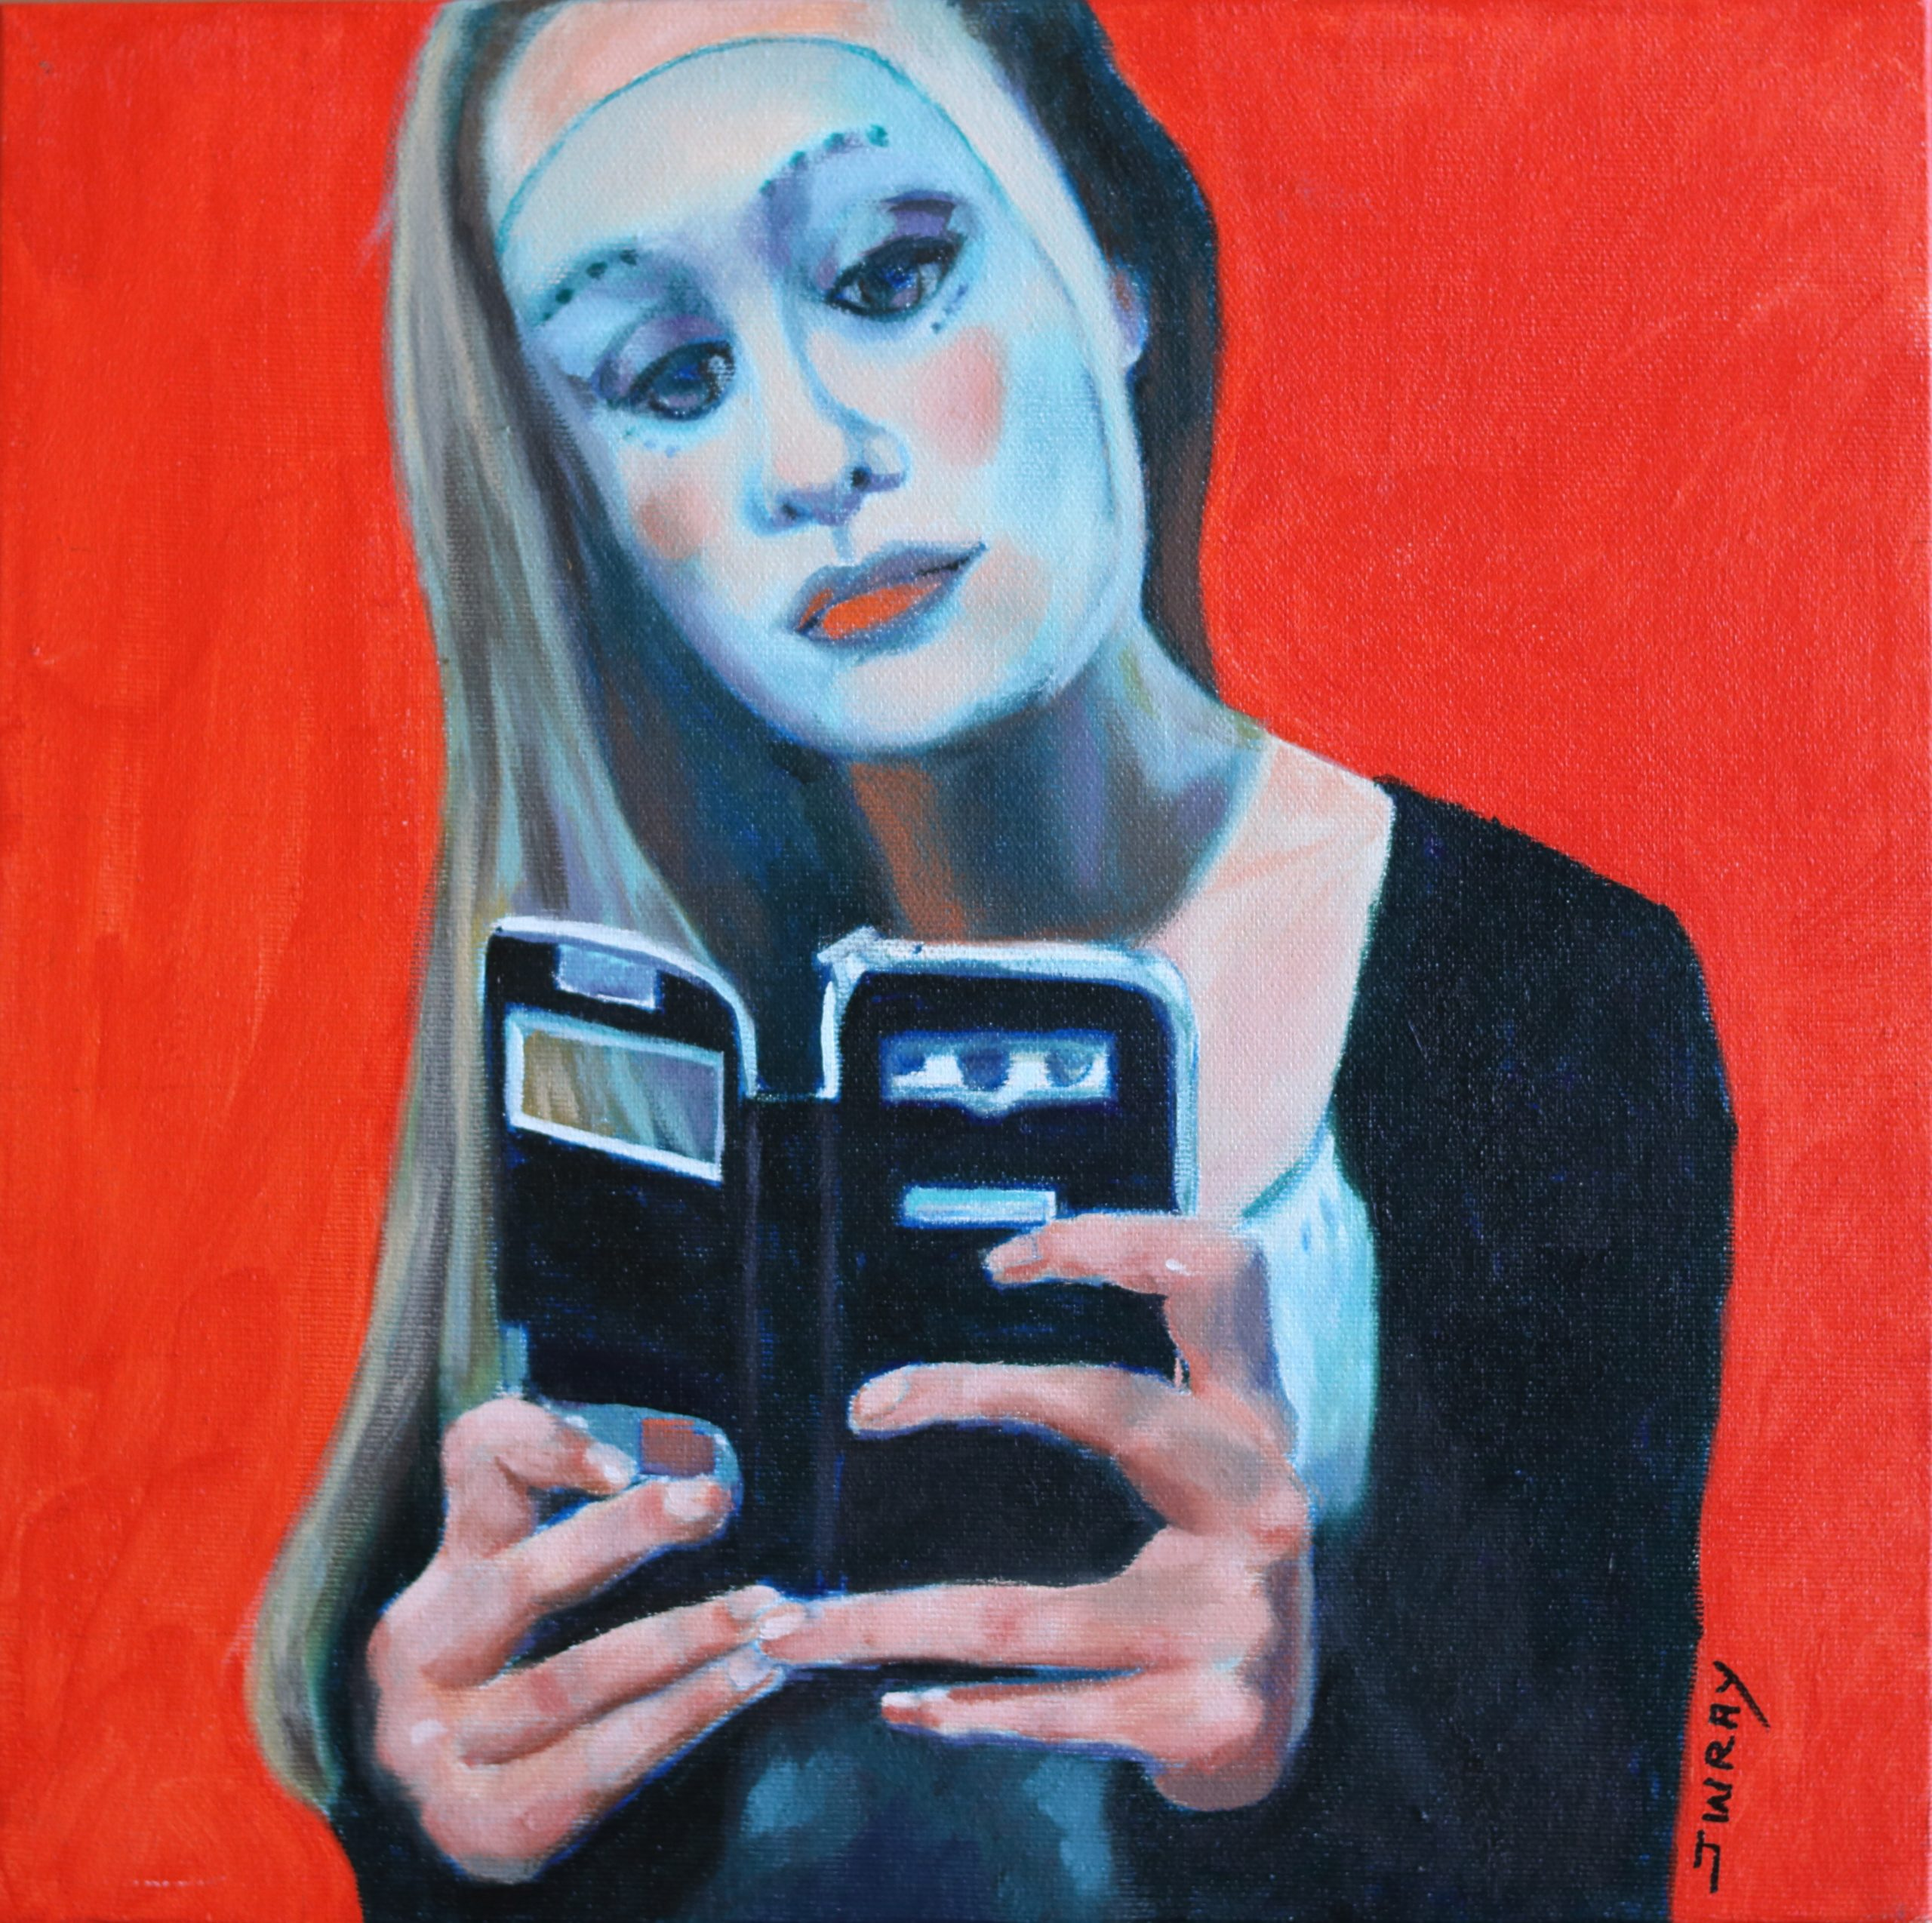 Johanna WRAY SnapChat, Acrylic and Oil on Canvas, 30cm x 30cm